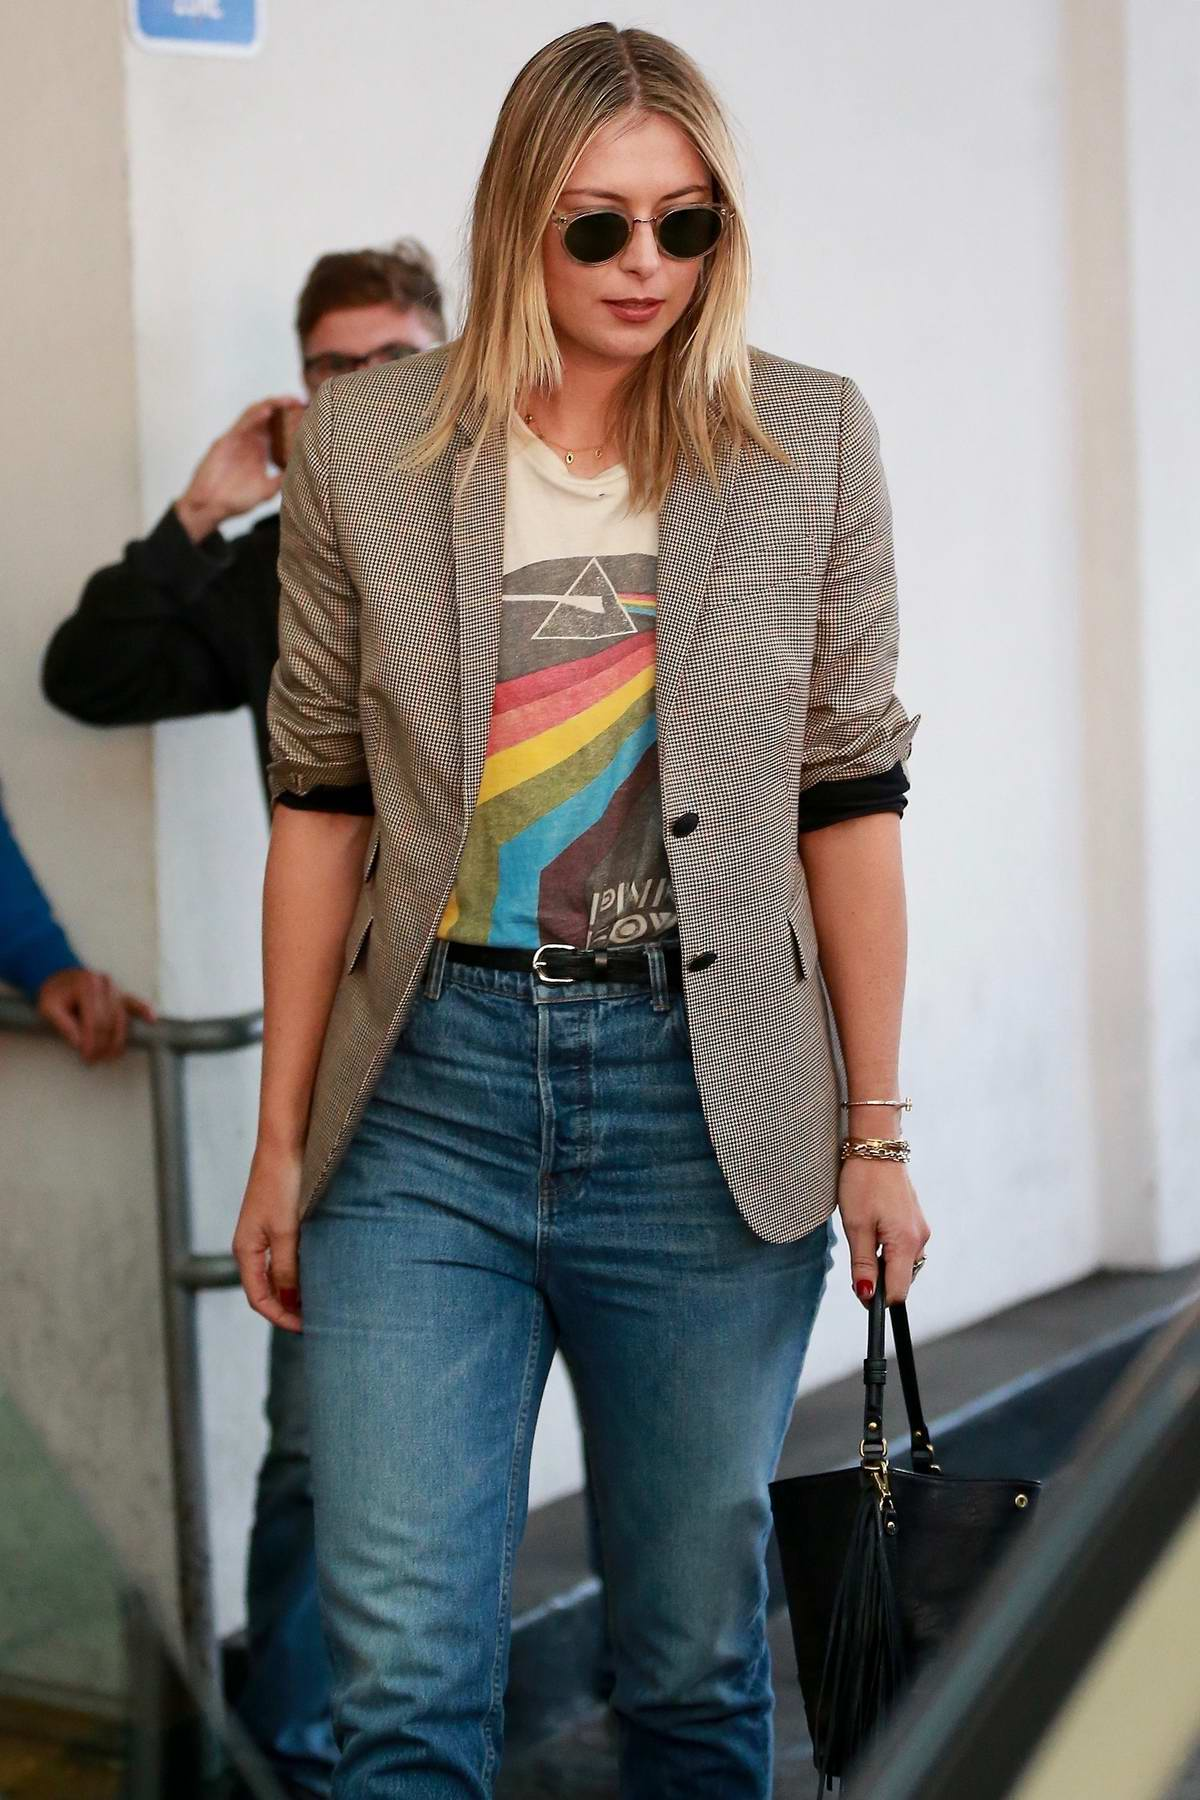 Maria Sharapova smiles for the cameras while leaving after lunch with friends at E Baldi restaurant in Beverly Hills, Los Angeles